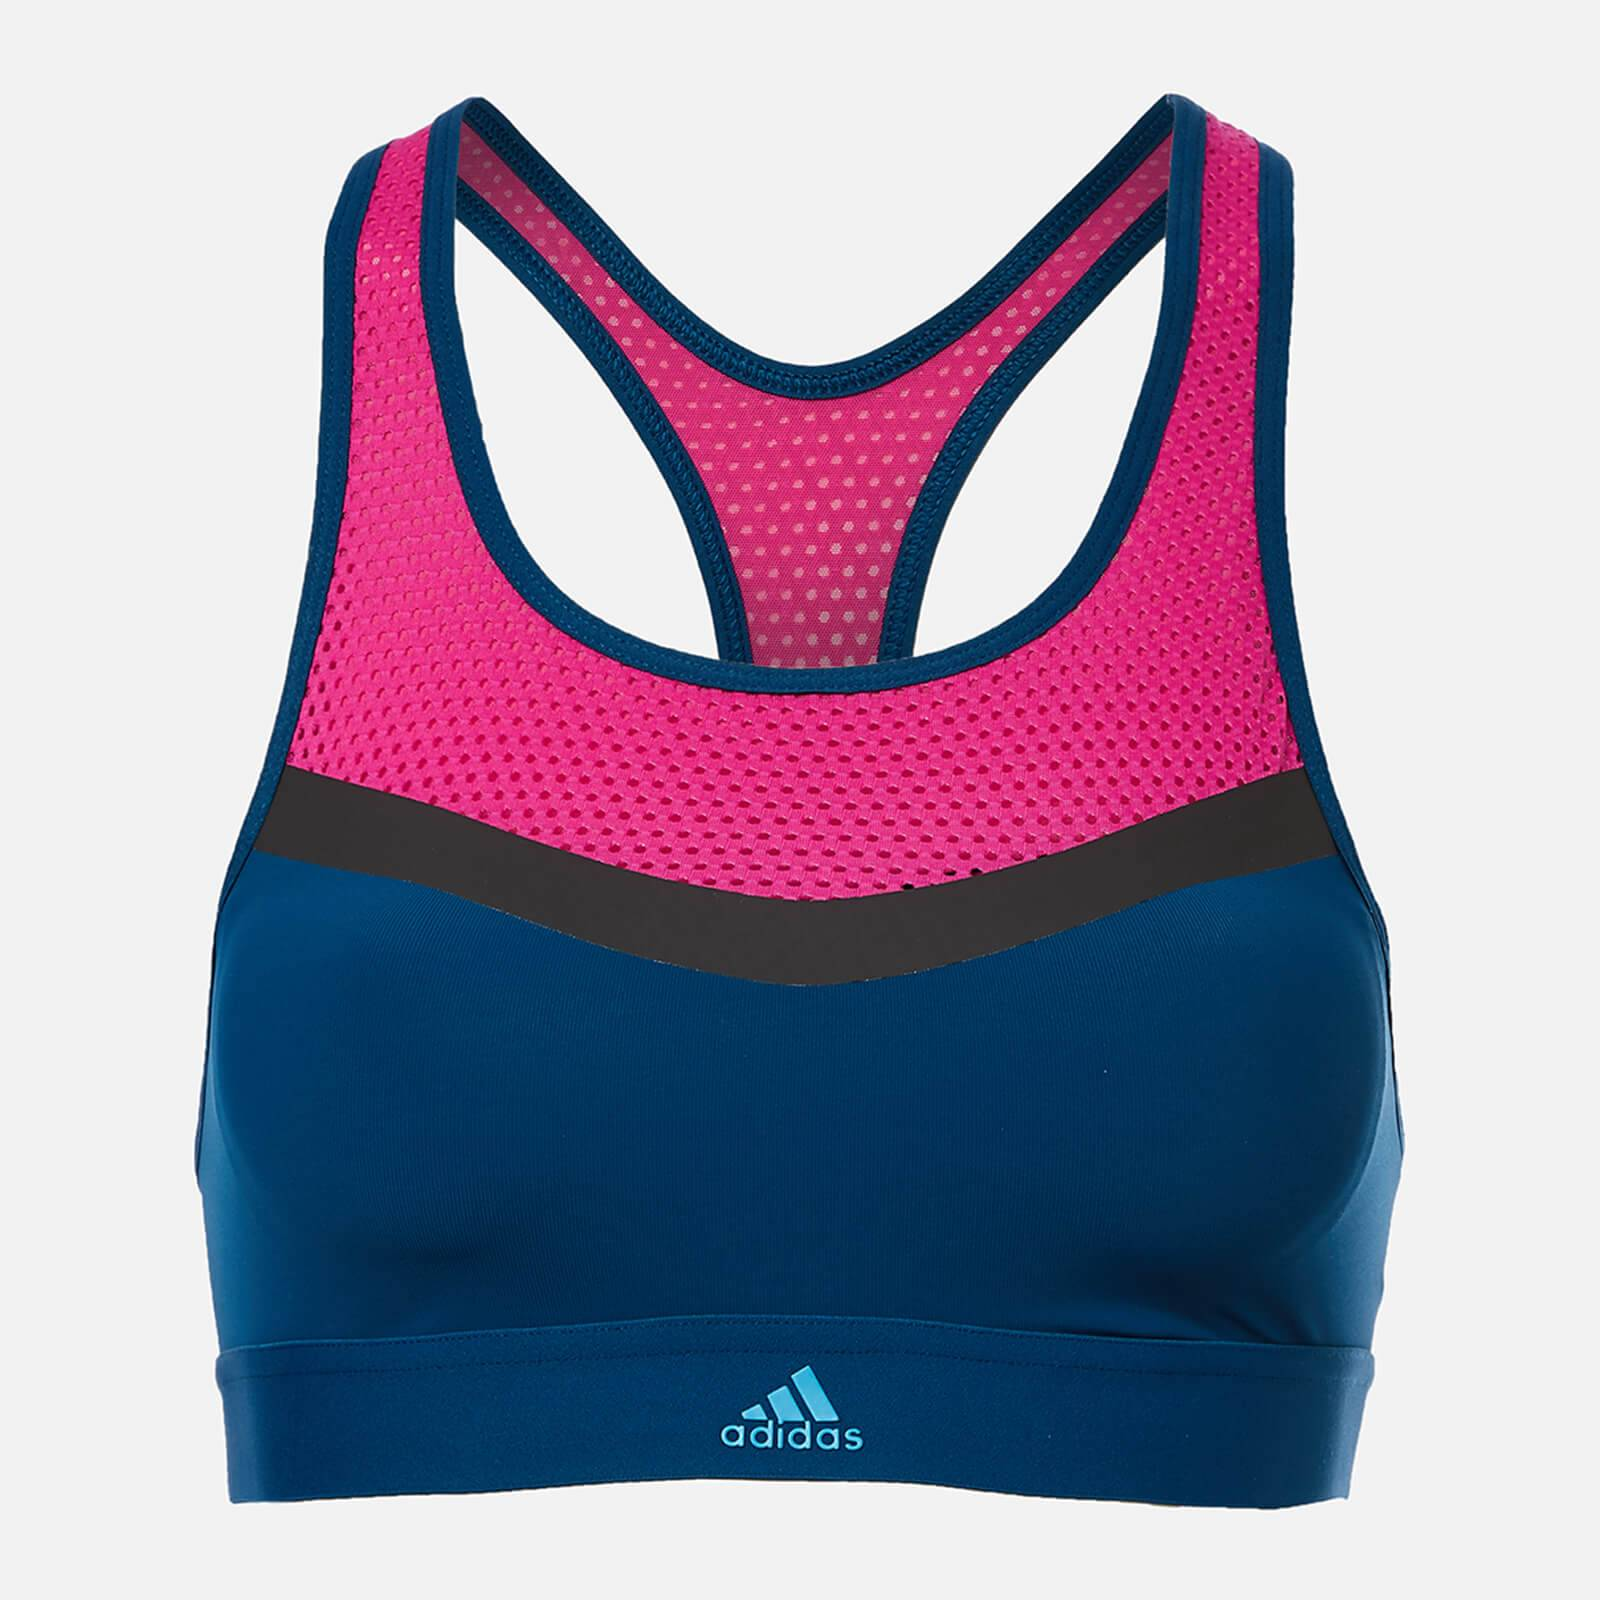 adidas Women's Don't Rest Swim Crop Top - Blue/Pink - 34C - Multi